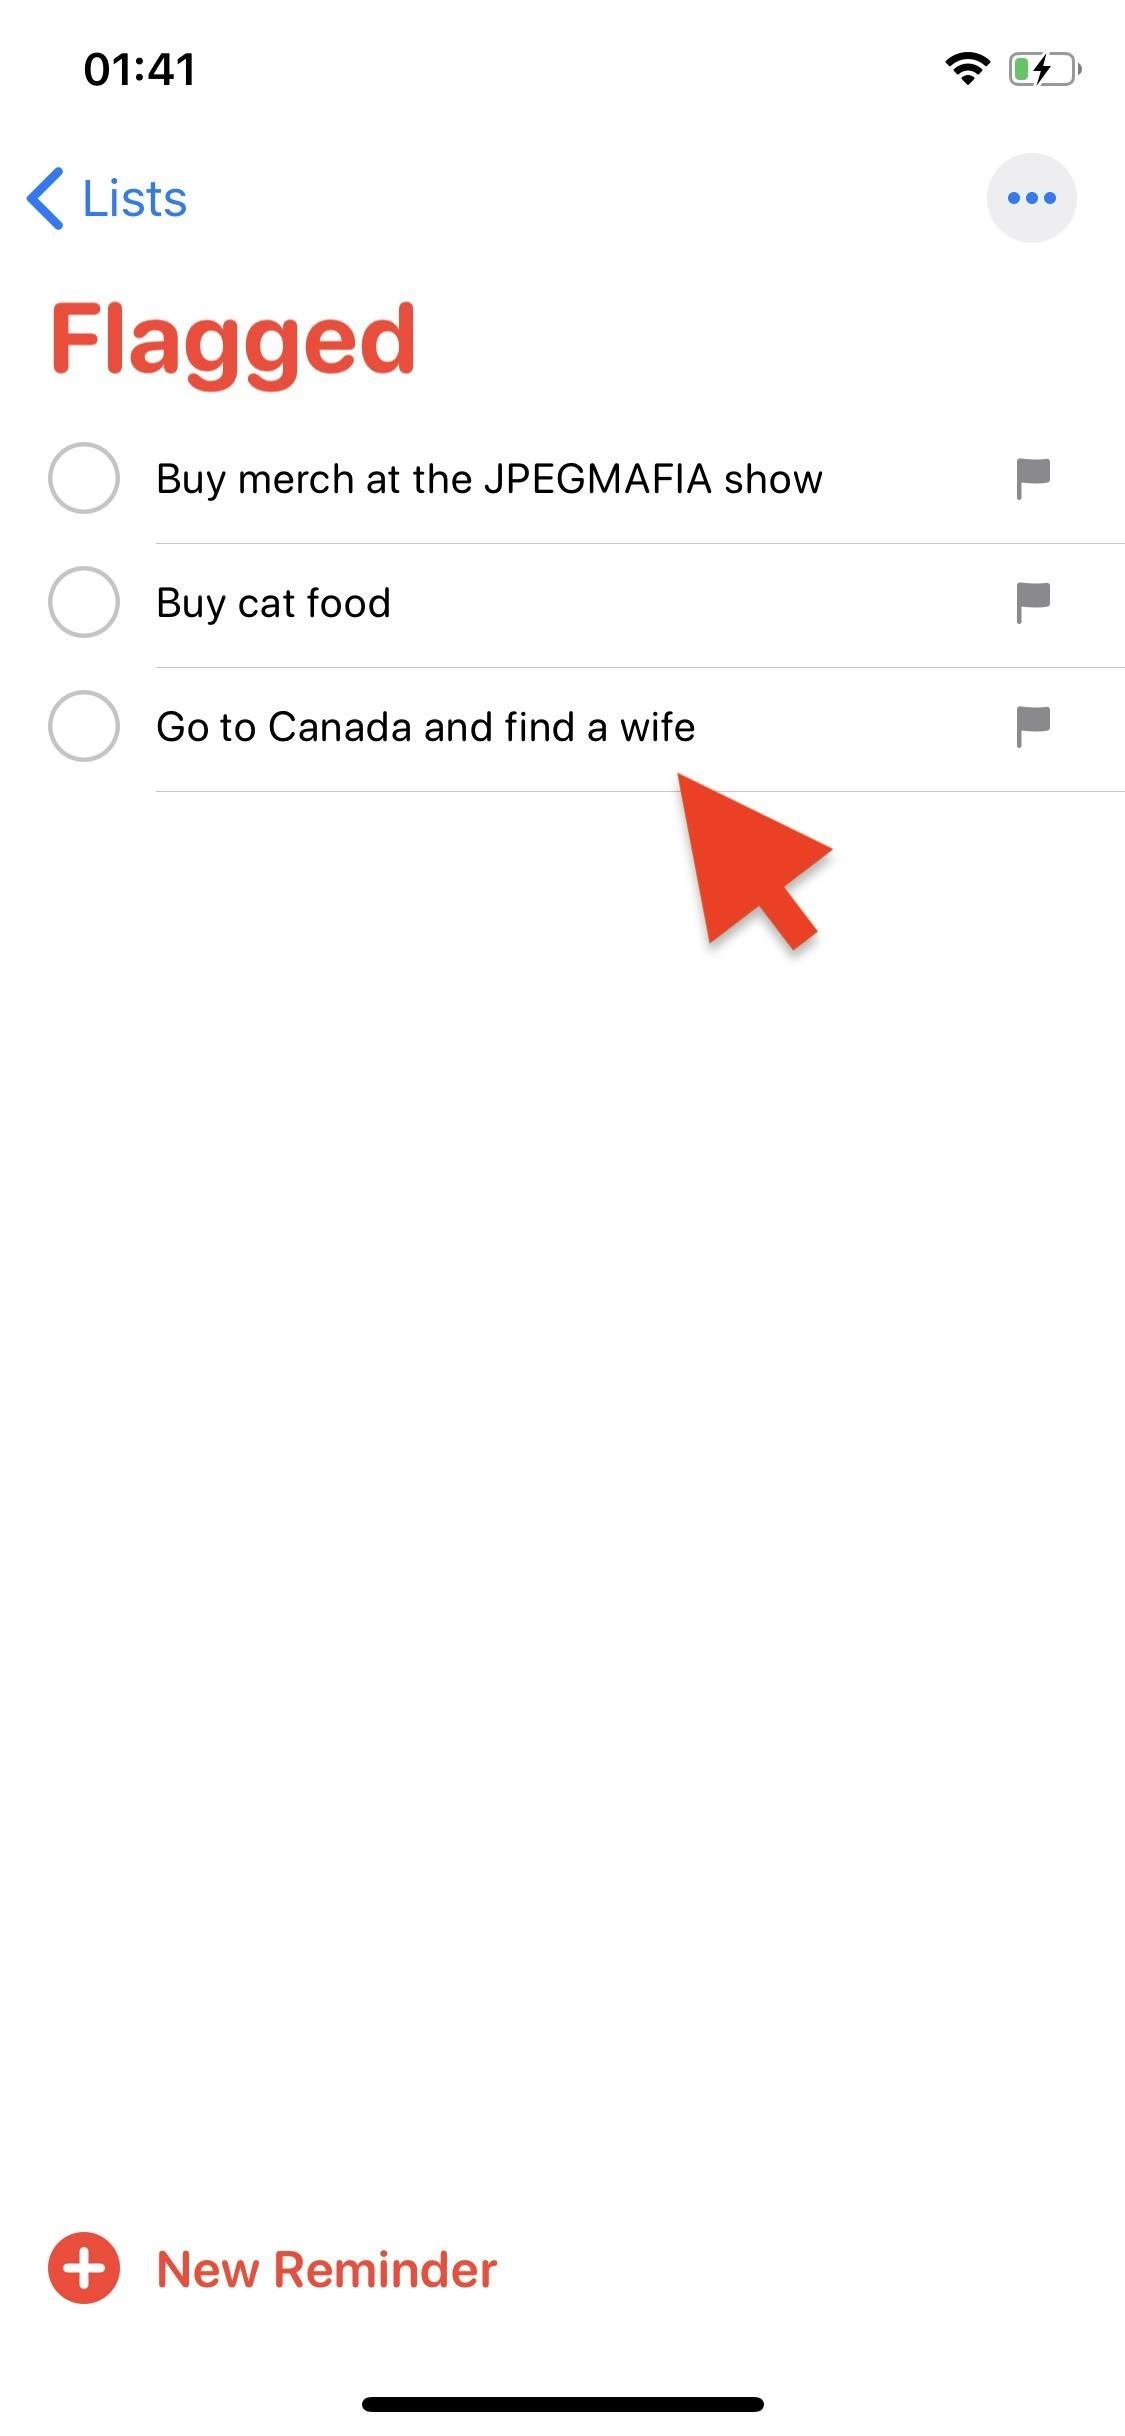 How to Flag Important Reminders in iOS 13 to Simplify Your Search